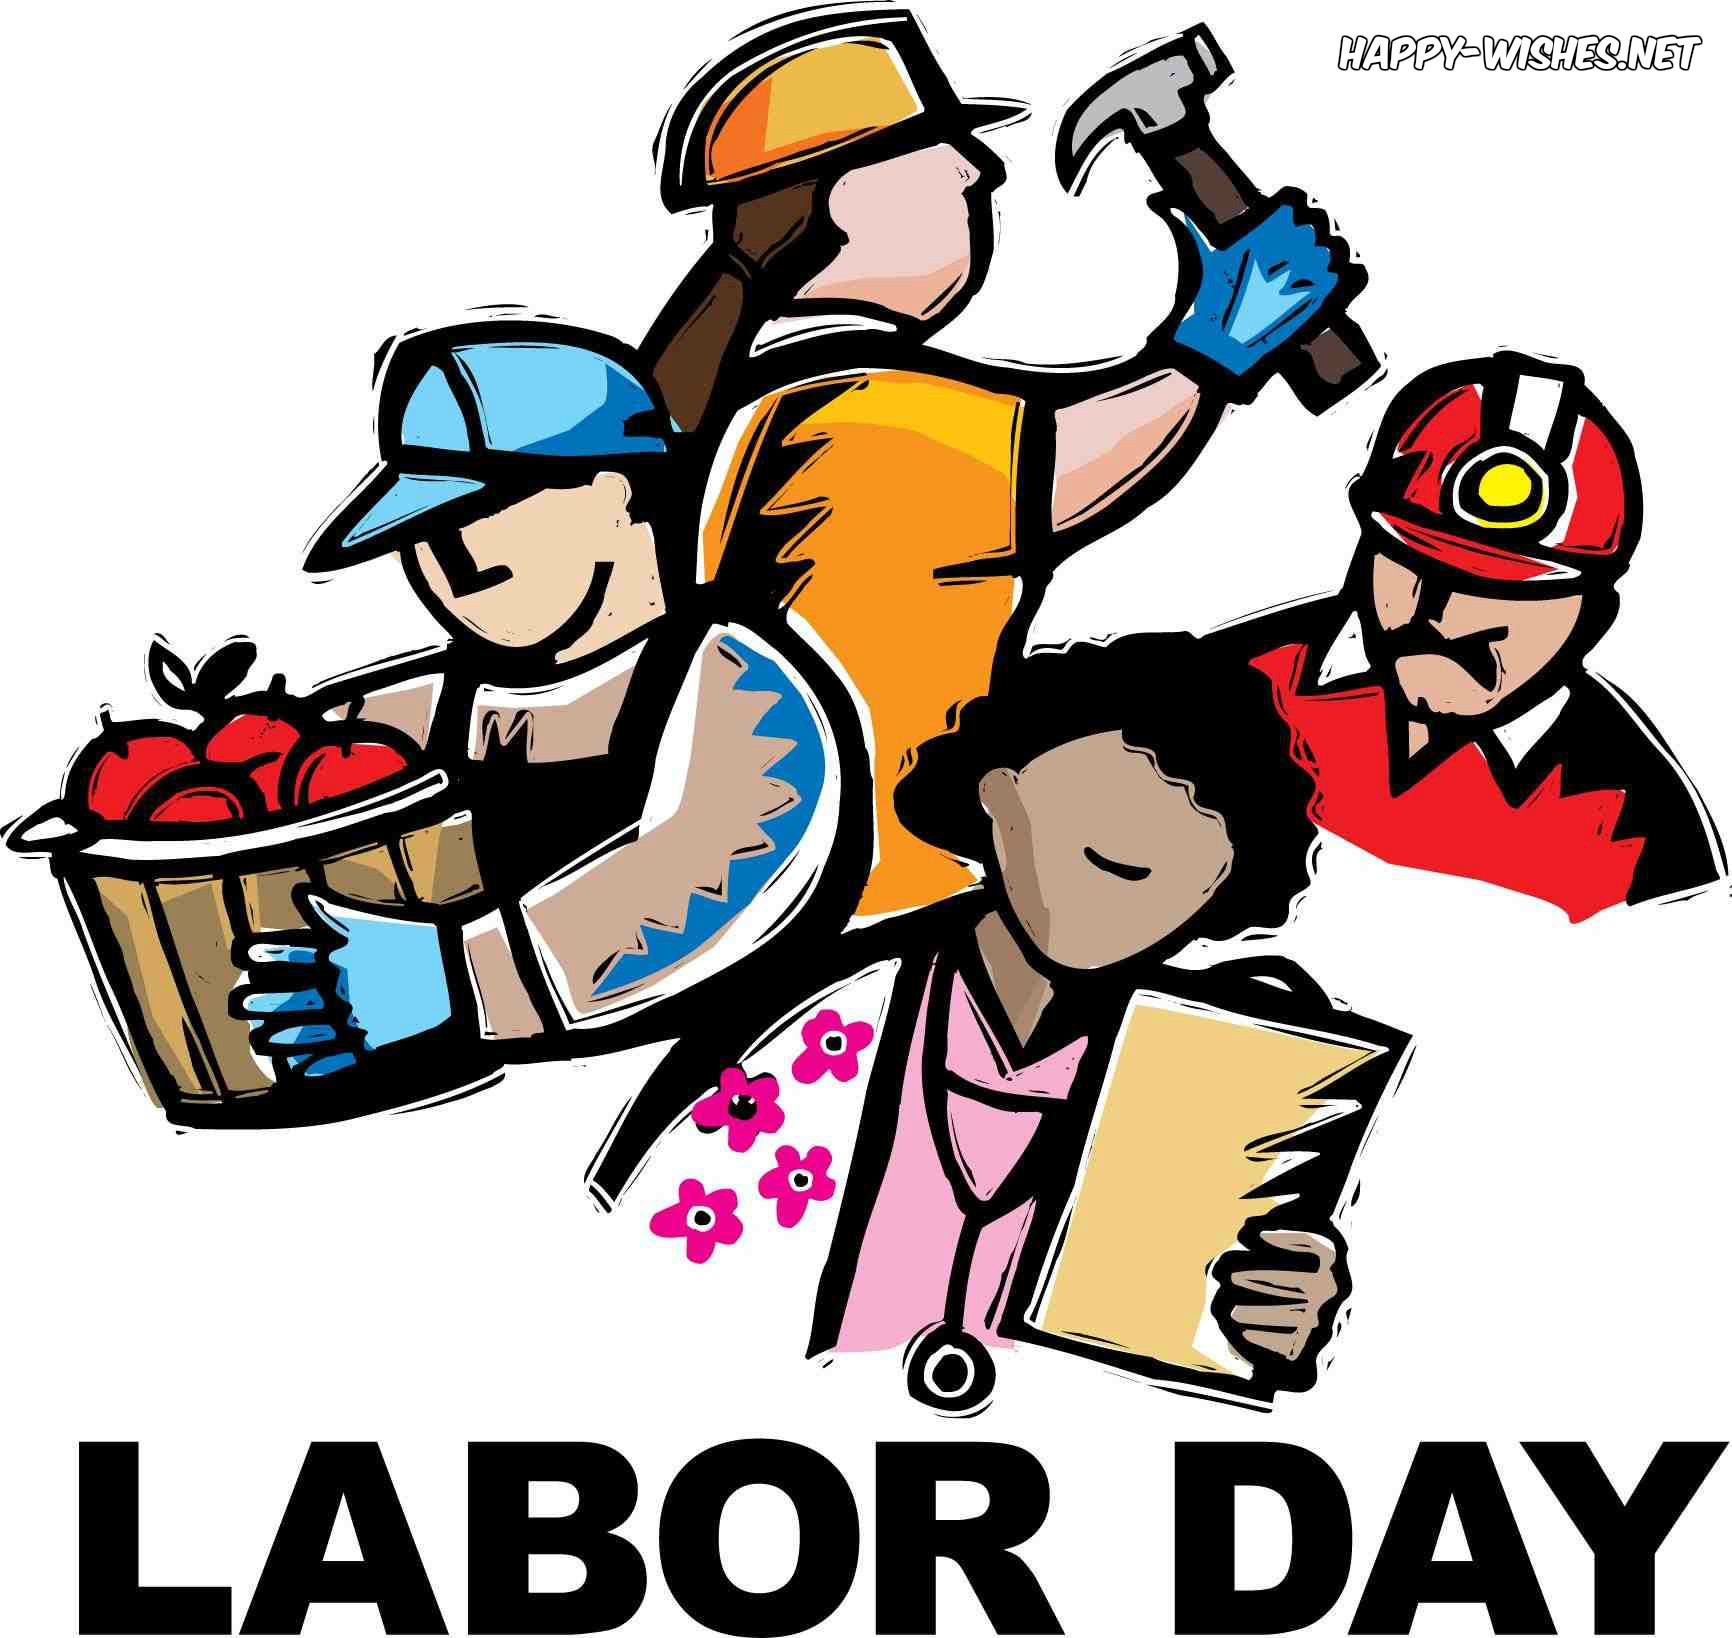 Labor Day Clip art Images containing employees